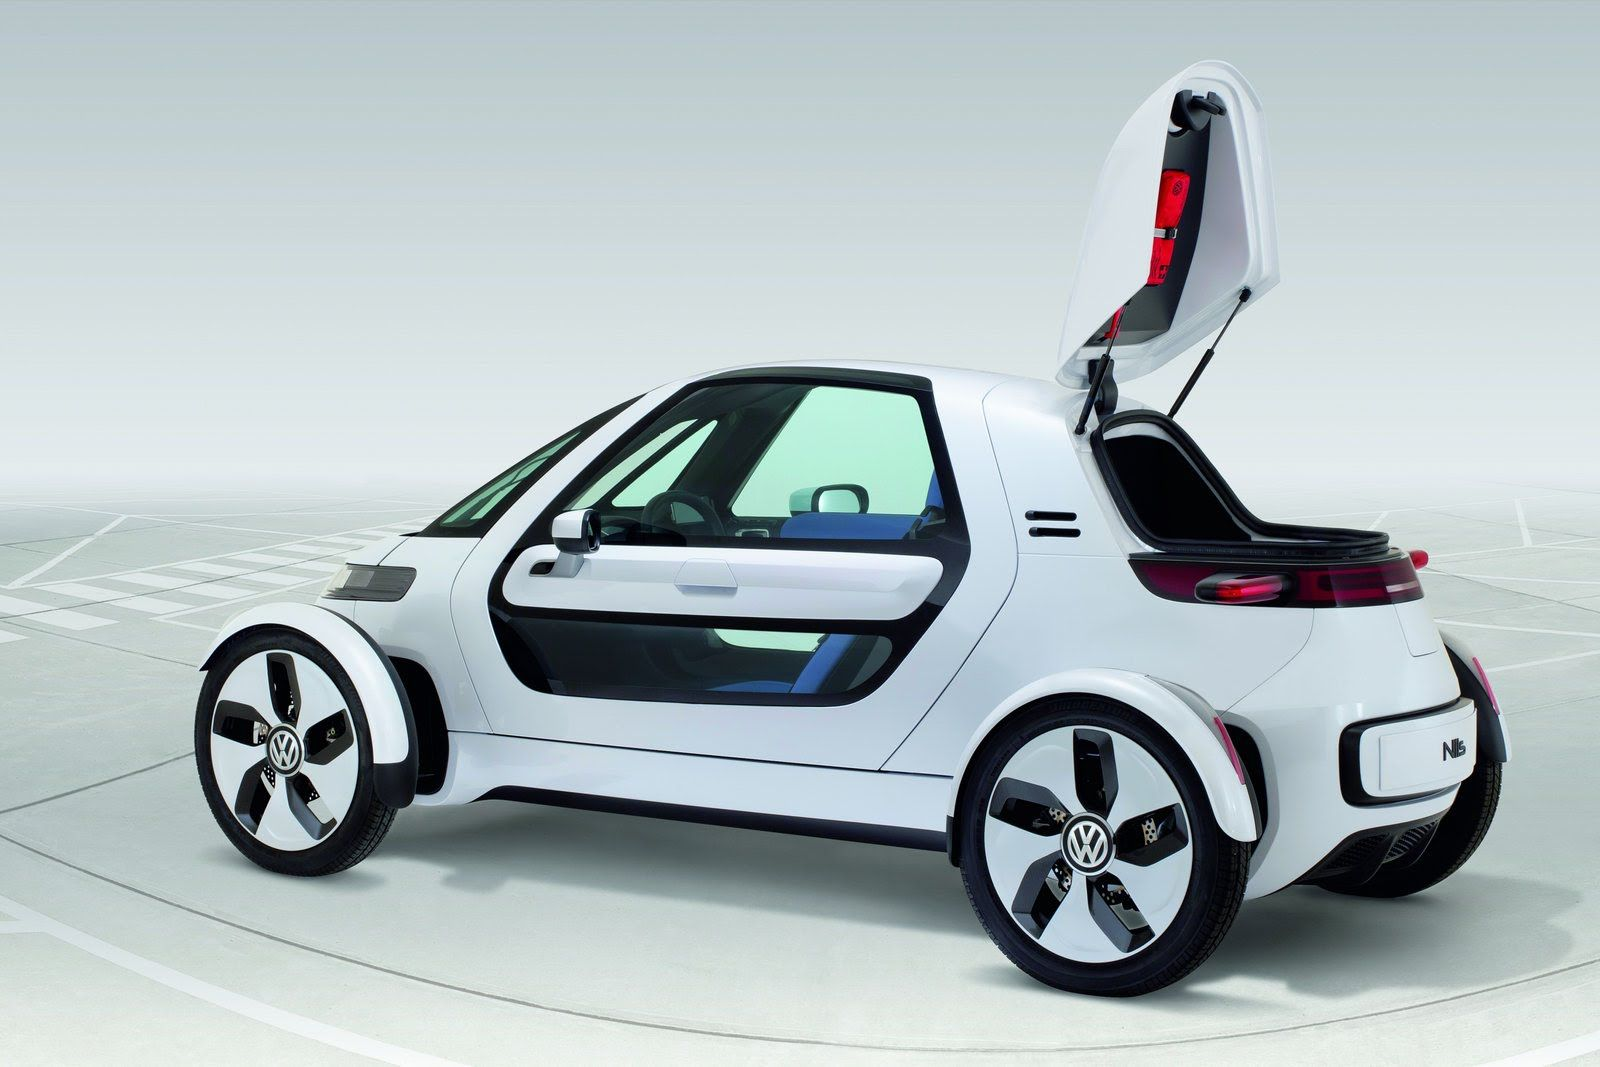 Elio Motors The Next Big Thing Page 21 Fuel Economy Maybe A Four Wheel Model Elio Motors Electric Cars Futuristic Cars